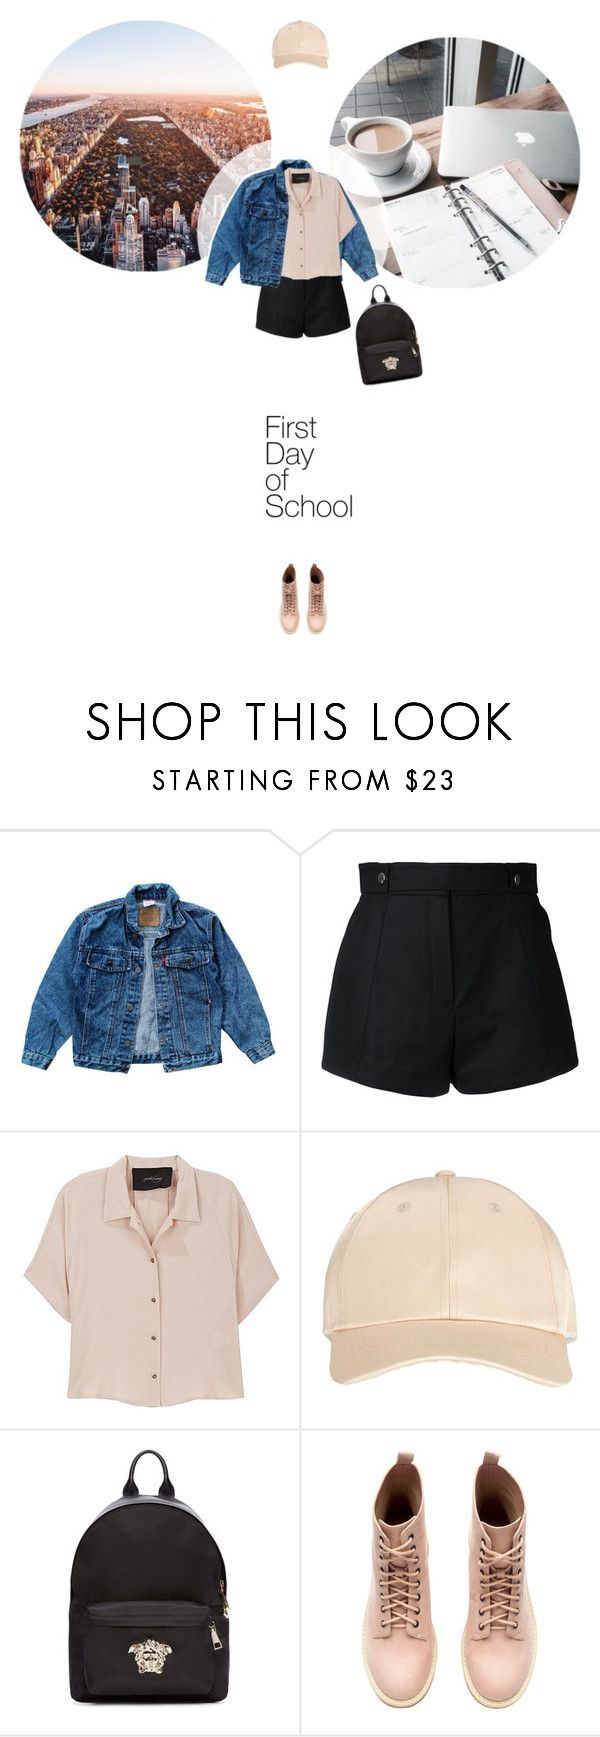 // 1304. Campus Chic: First Day of School. by lilymcenvy on Polyvore featuring Rachel Comey, Levi's, Courrèges, Versace, Miss Selfridge and BackToSchool